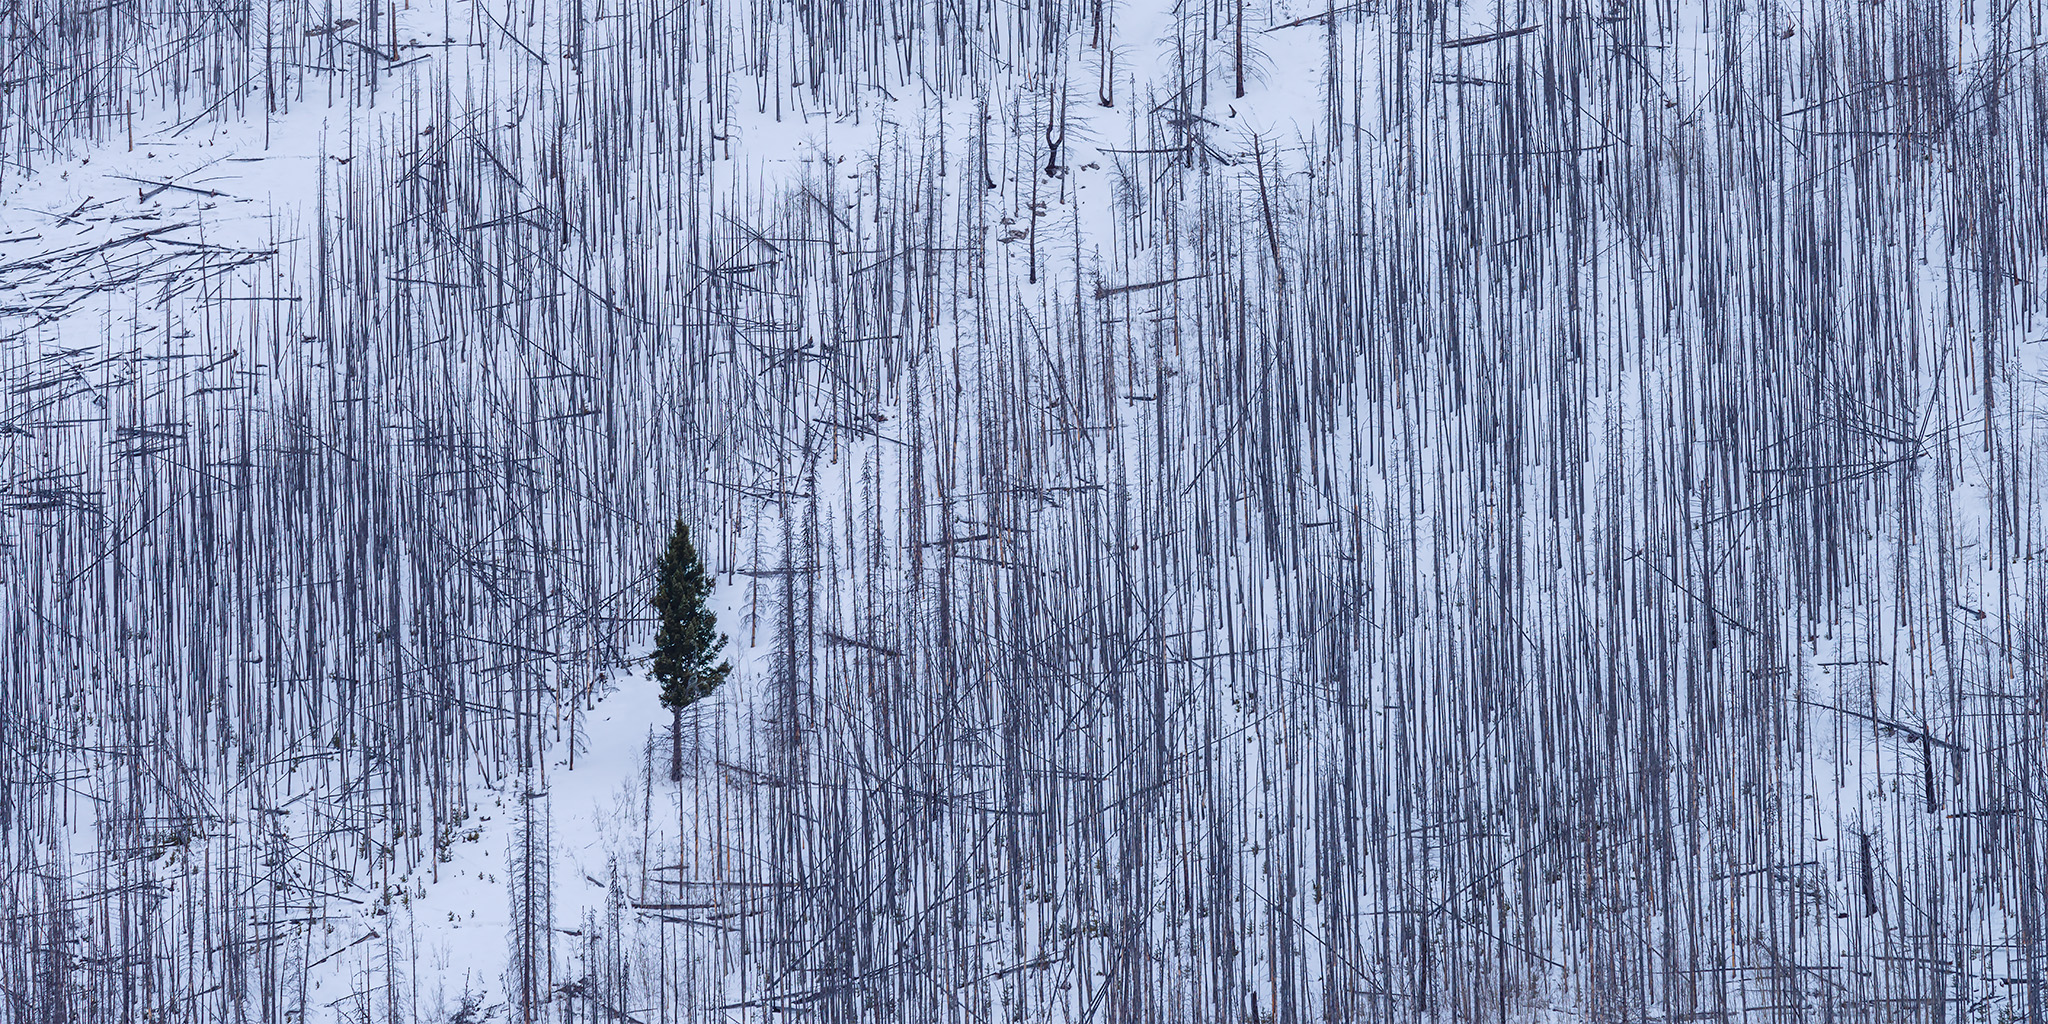 A lone conifer stands in a burnt forest in the Canadian Rockies